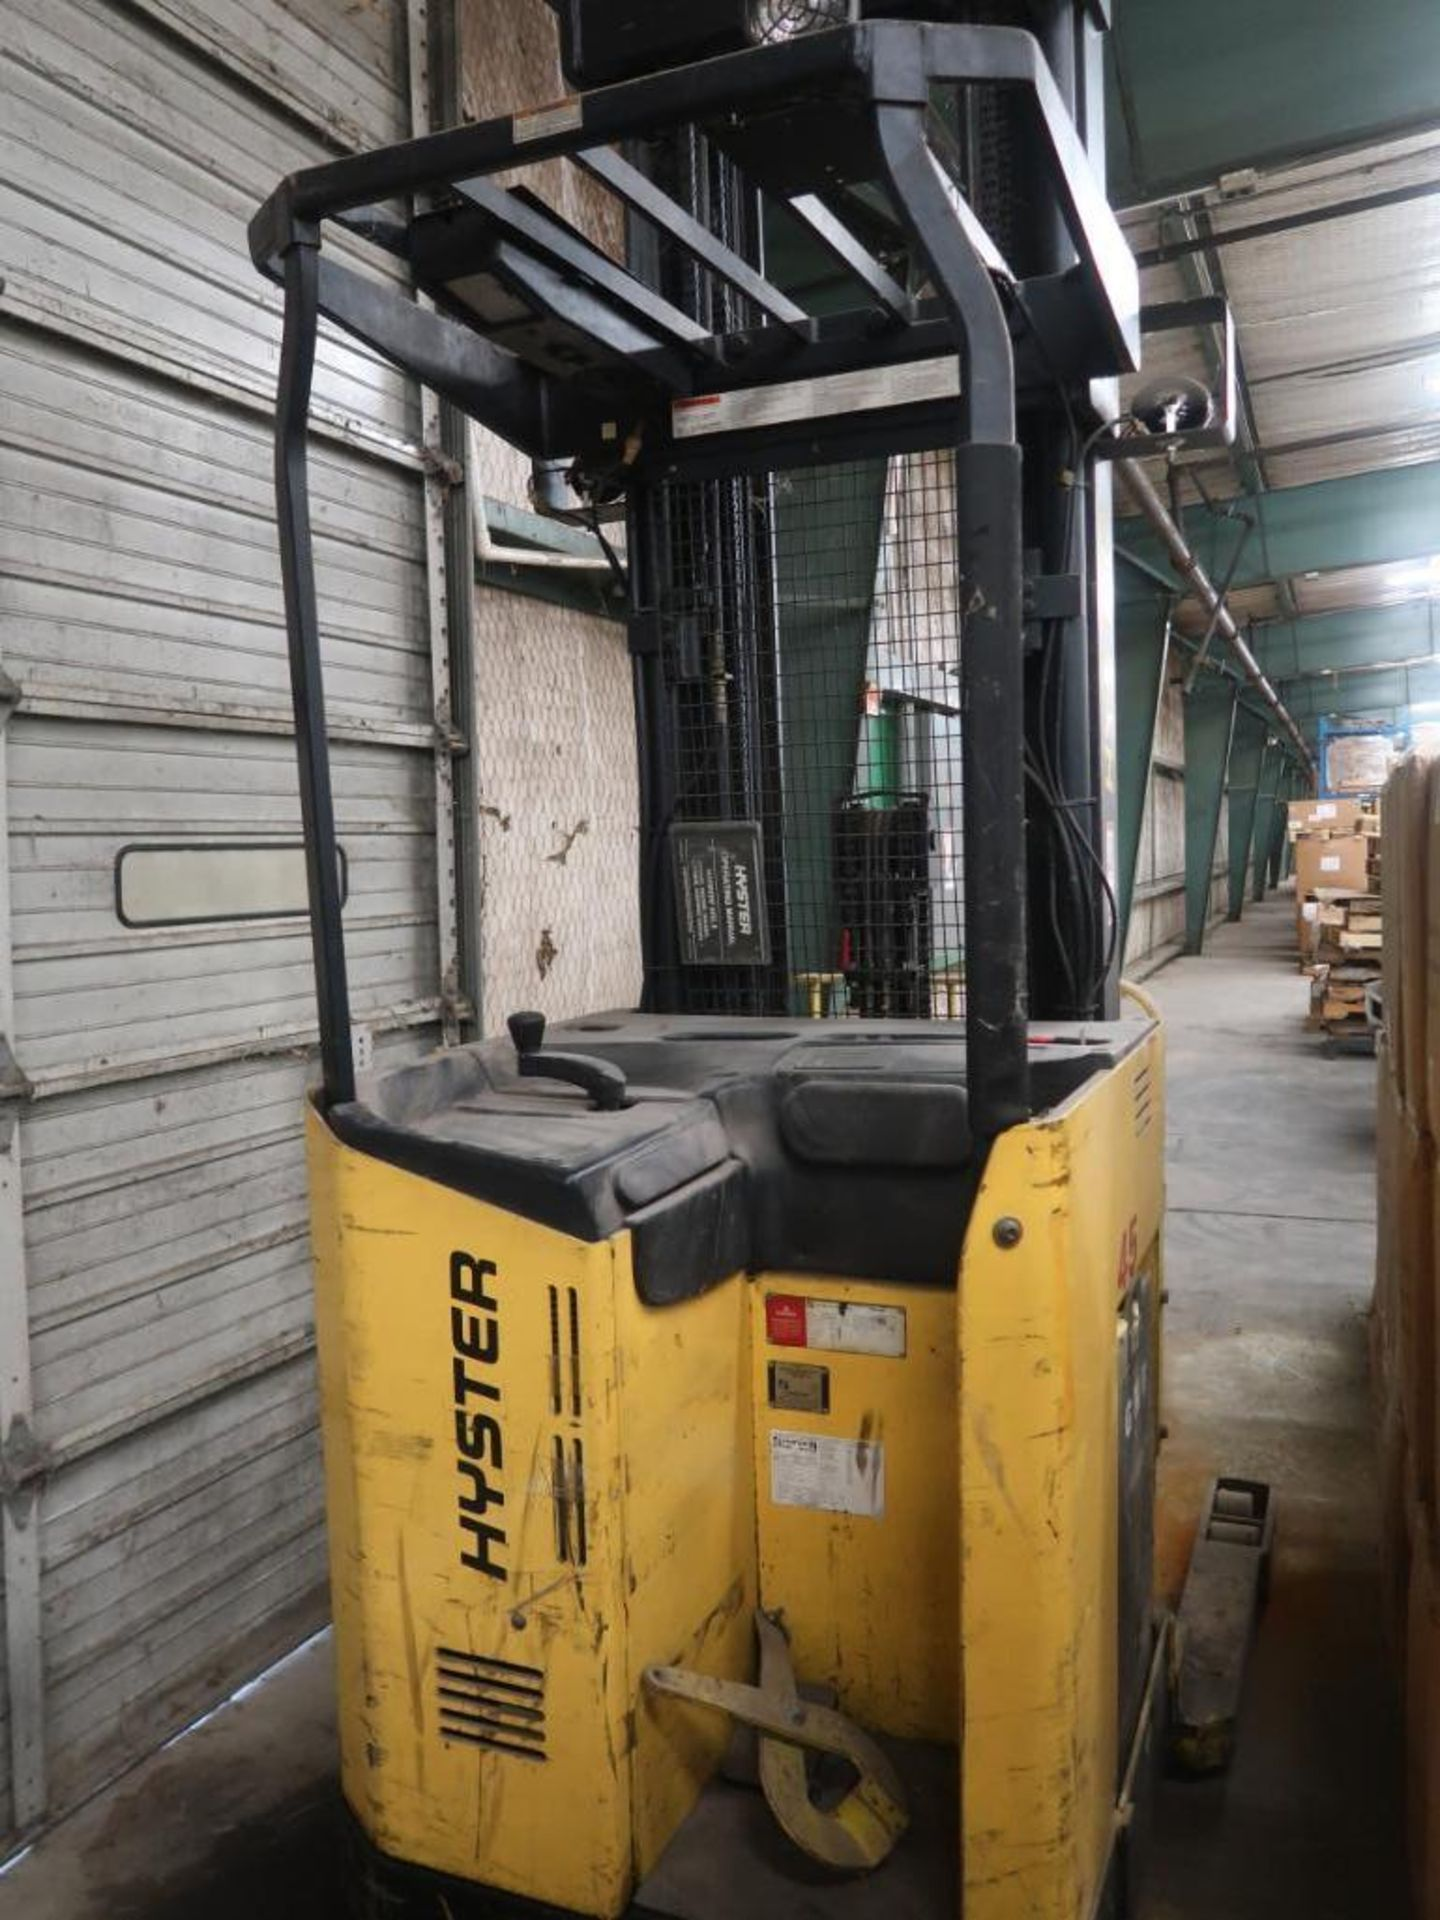 Lot 246 - Hyster 3400 lb. Electric Lift Truck Model N45XMR, S/N E138H01936T, with Side Shift (as is)